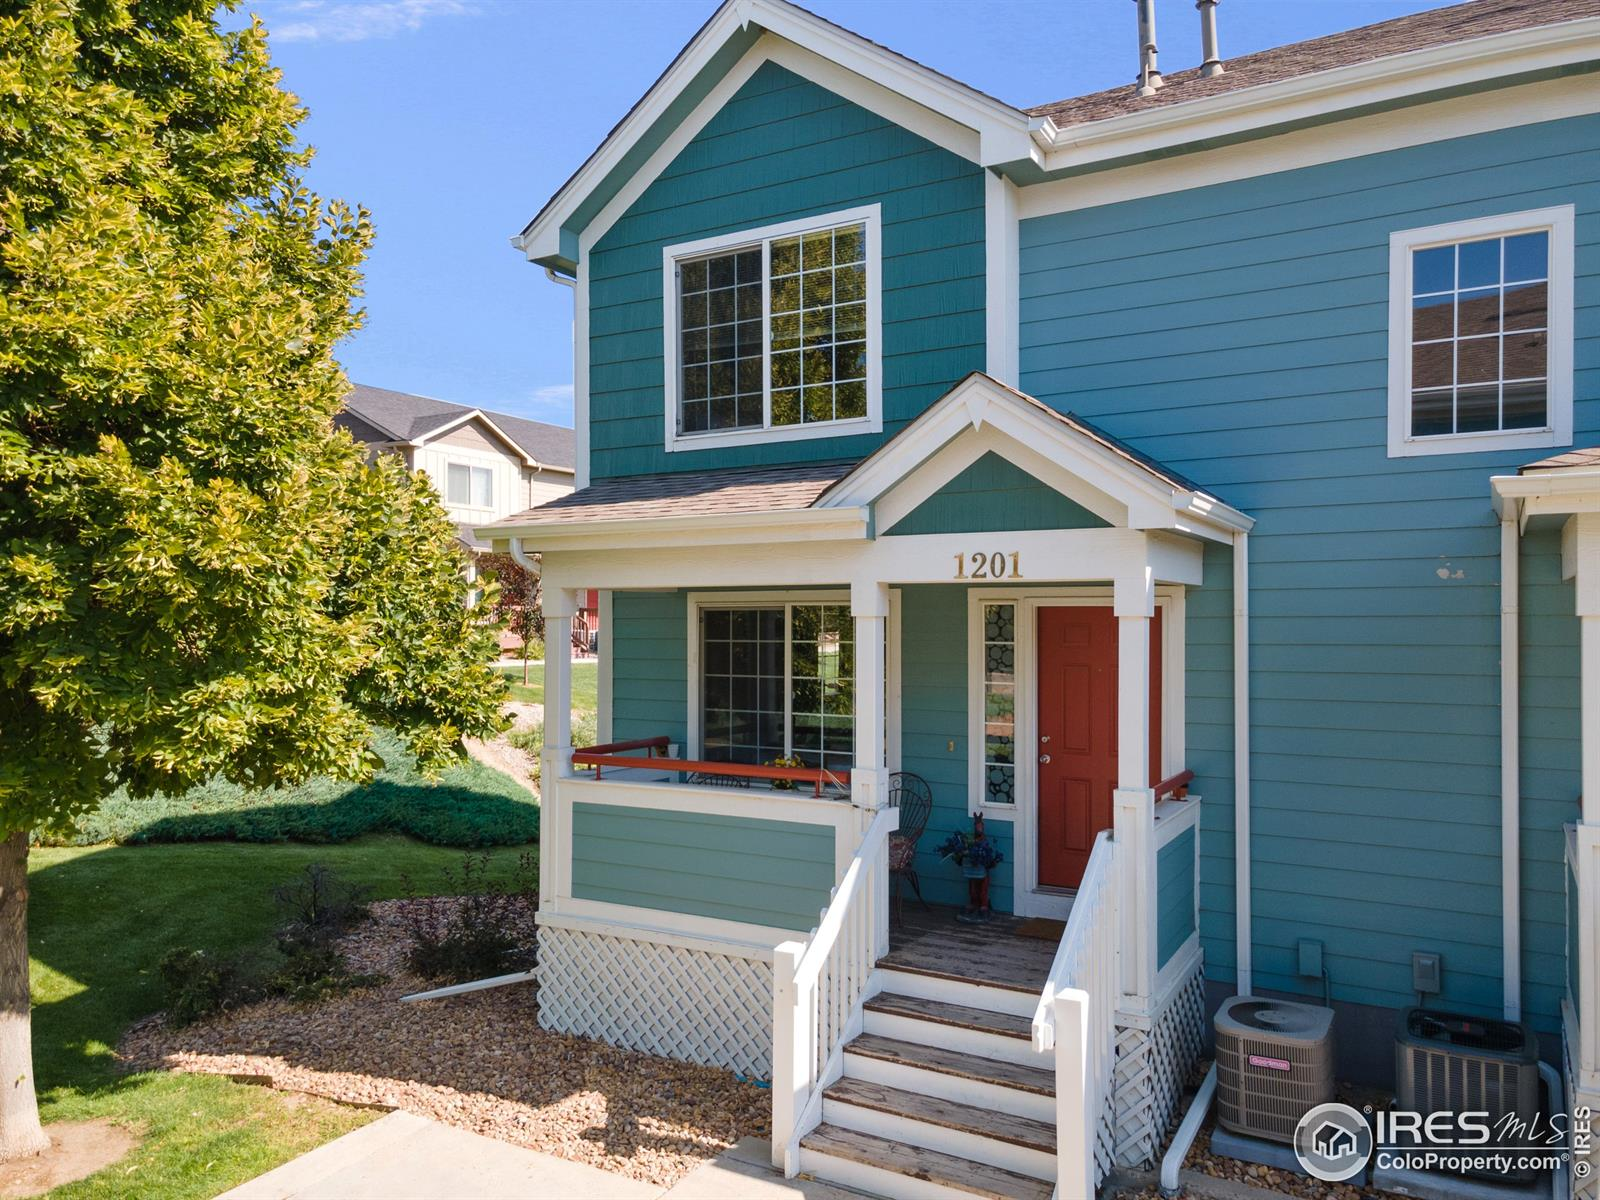 Photo of 3660 W 25th Street  1201, Greeley, CO 80634